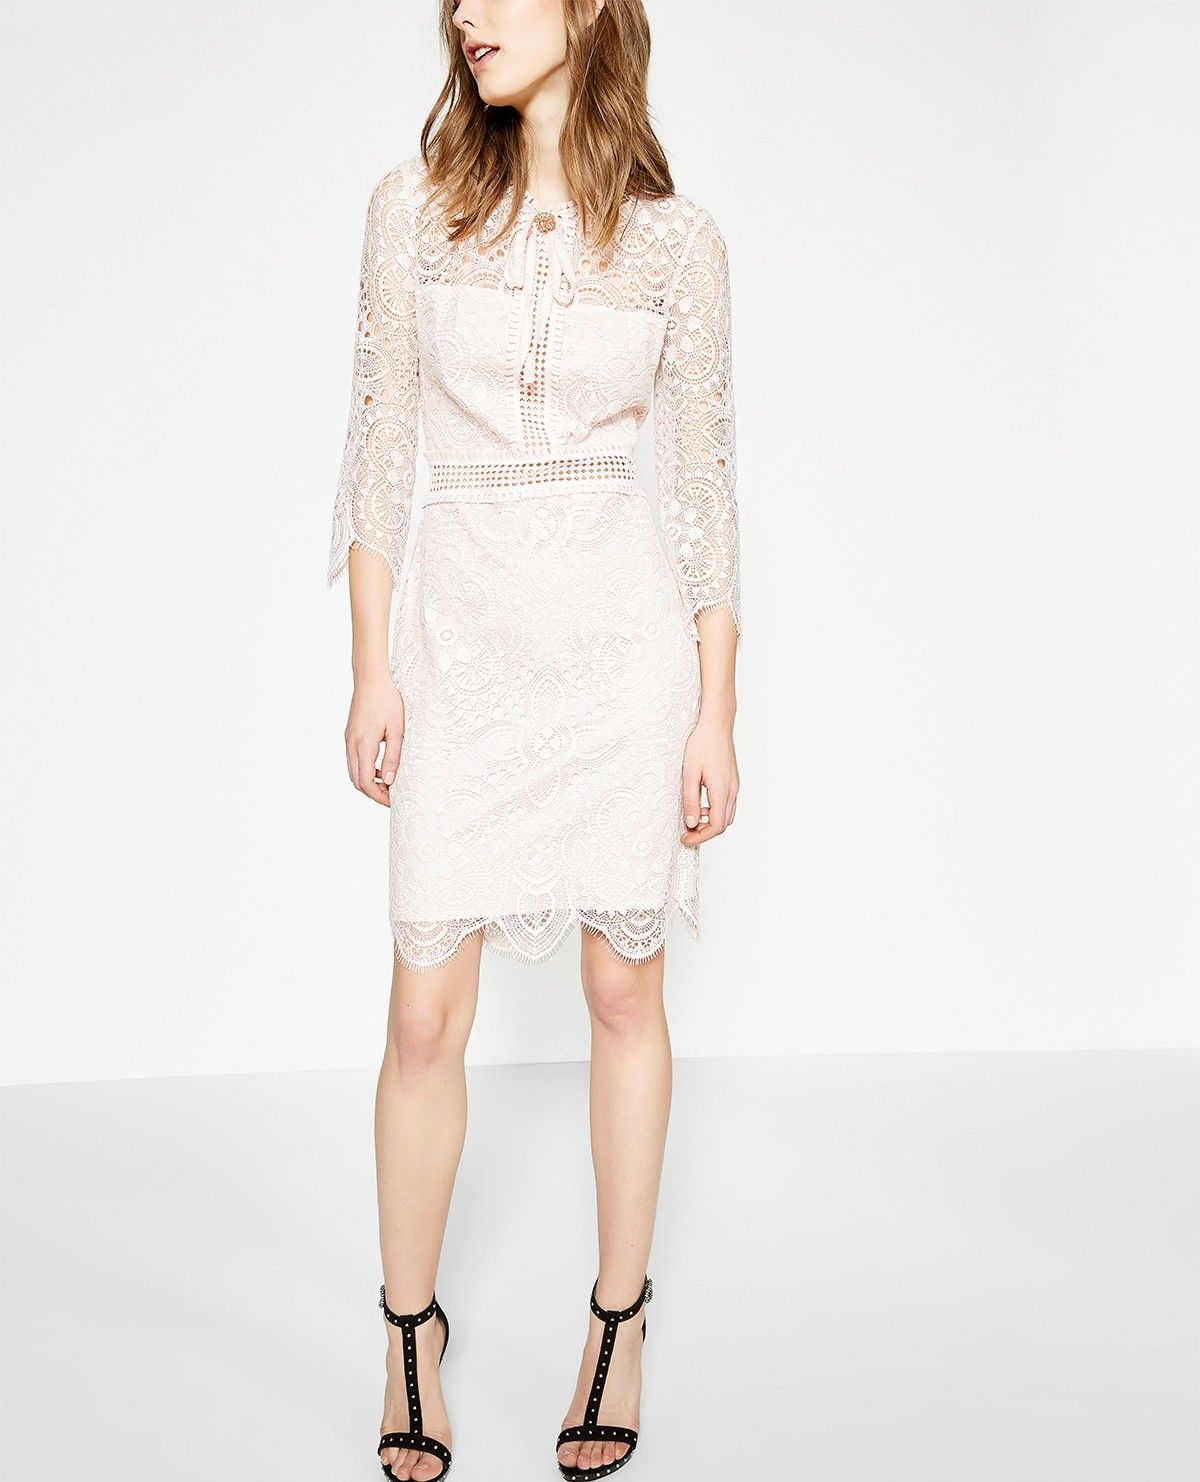 Robe Rose Poudre Dentelle Brodee Collection The Kooples 4 Home 5